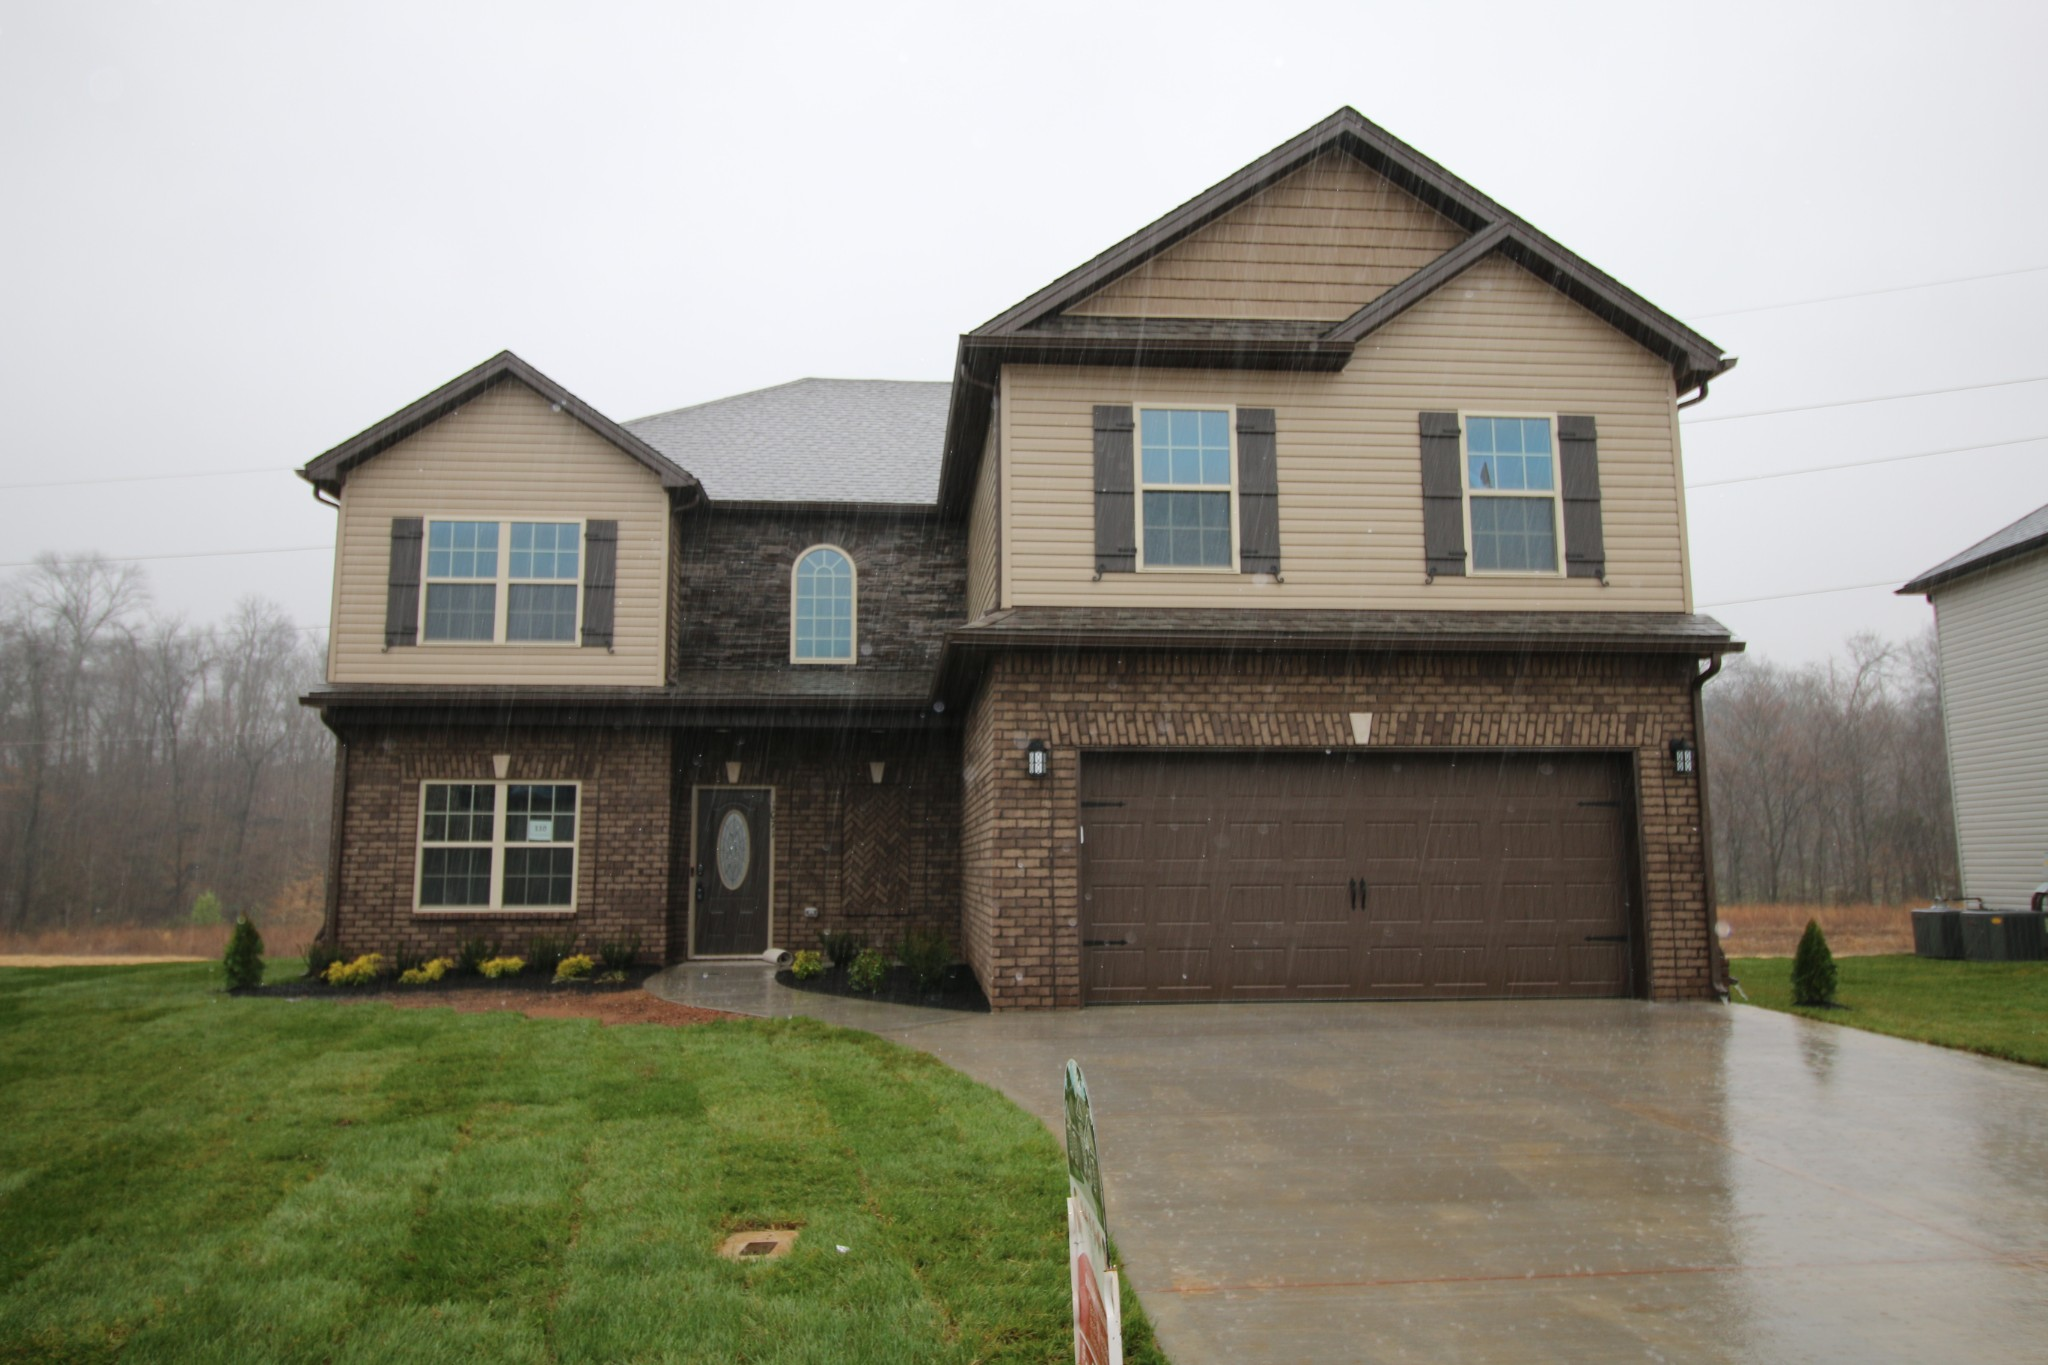 110 The Groves at Hearthstone, Clarksville, TN 37040 - Clarksville, TN real estate listing